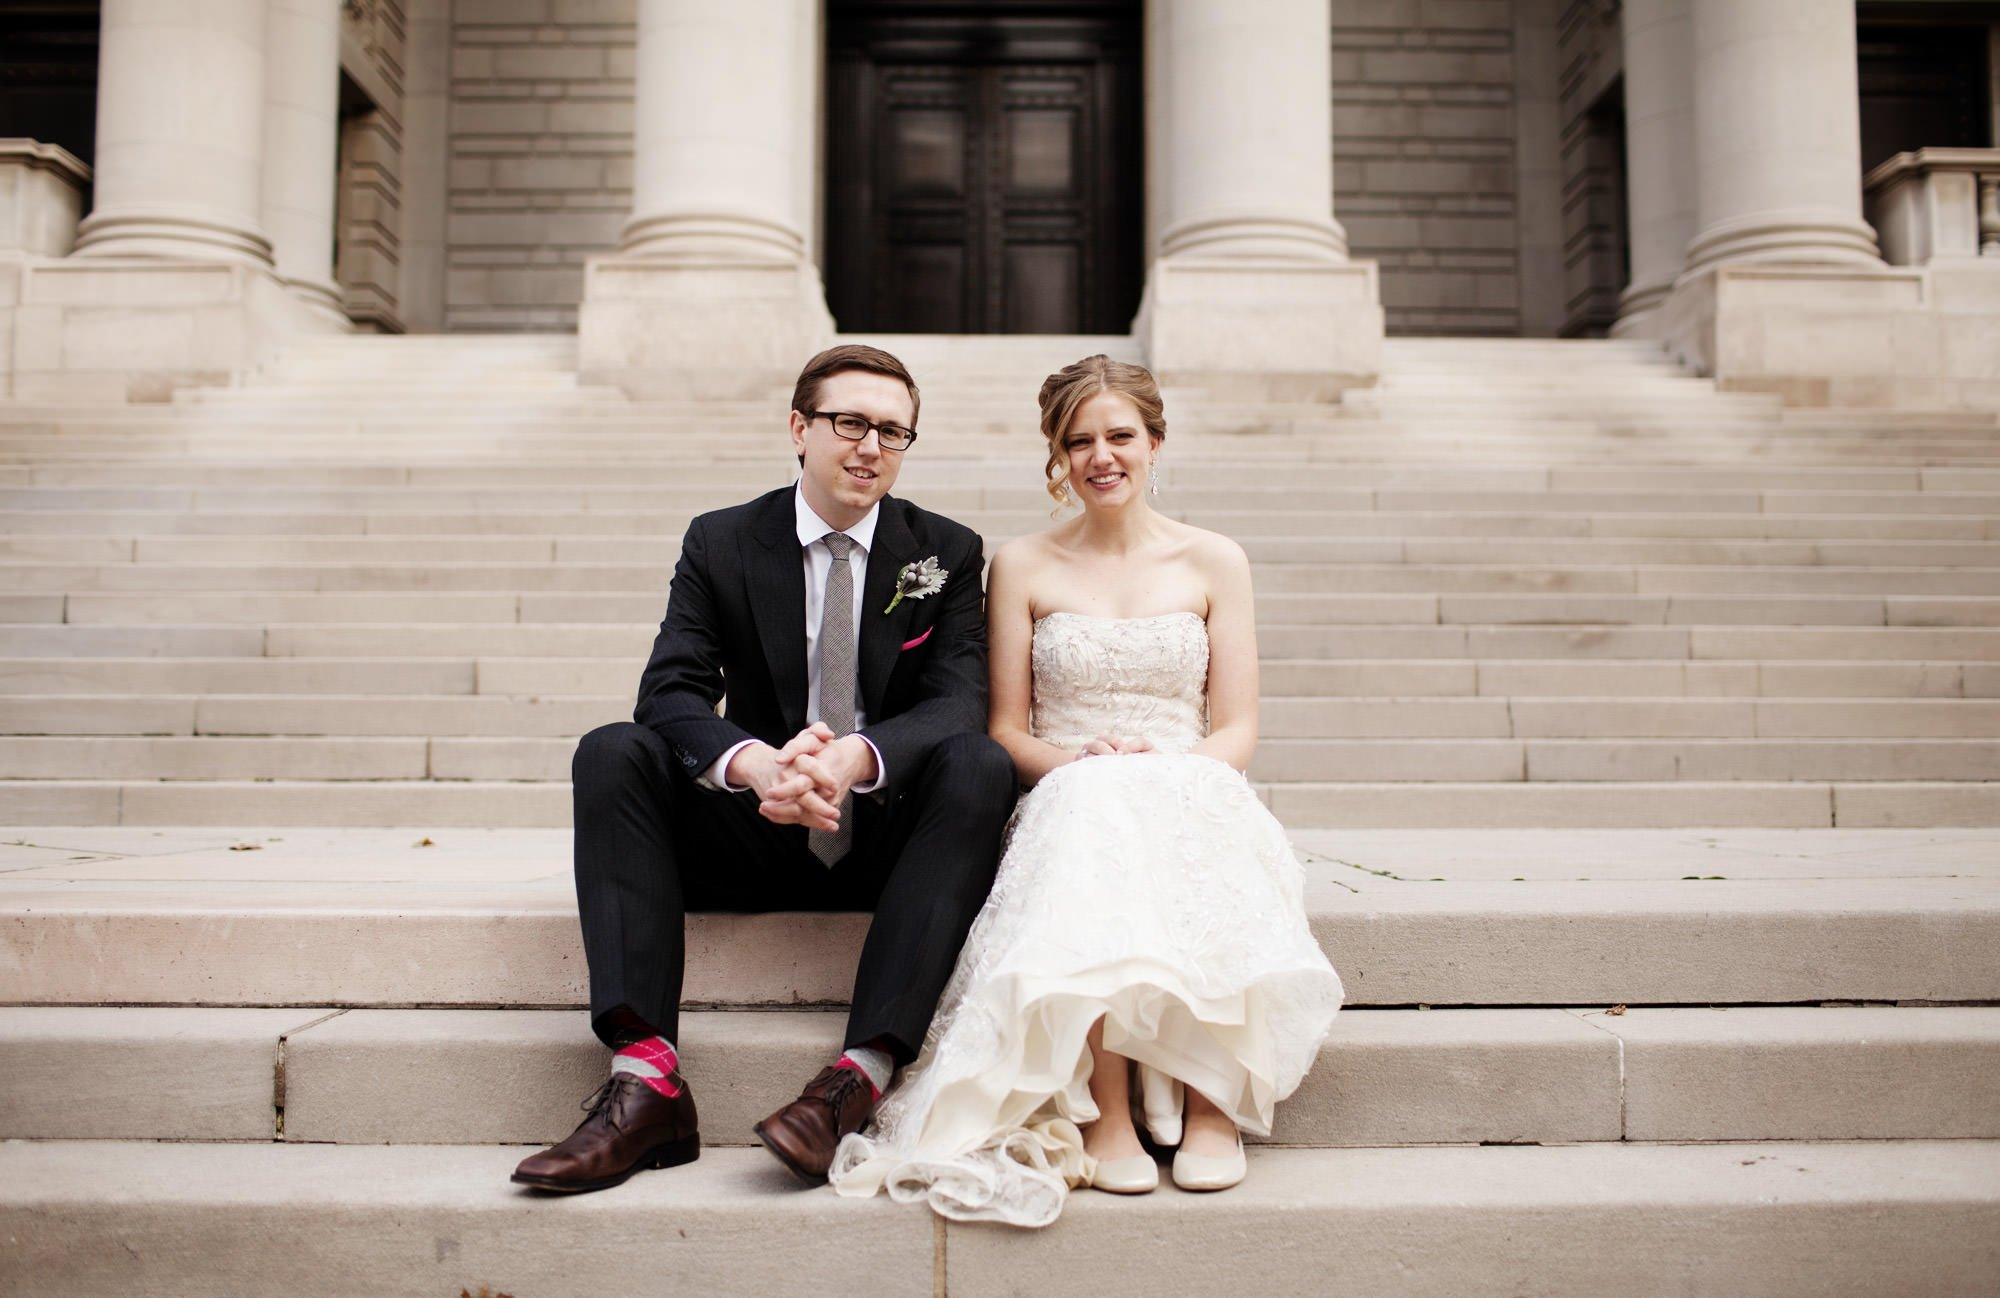 The bride and groom pose for a portrait on the steps of the Carnegie Institute for Science.